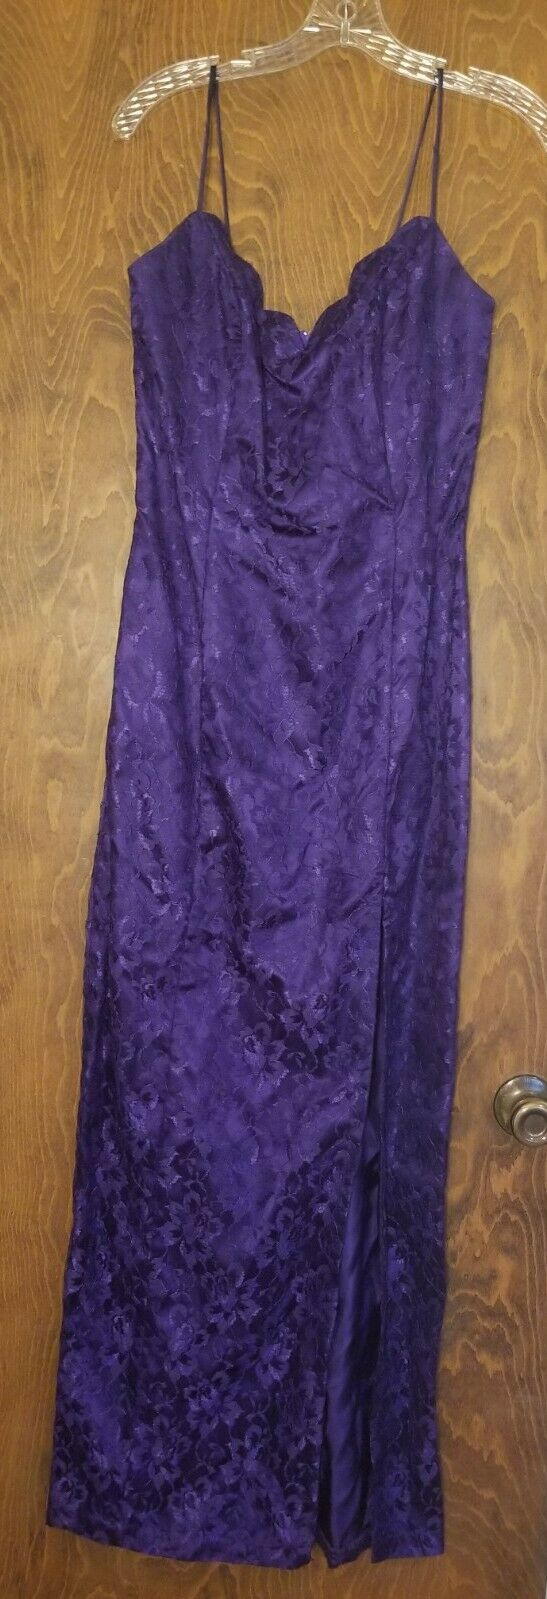 L A GLO Purple Evening Party Prom Spaghetti Straps Full Length Slit Fitted 9/10